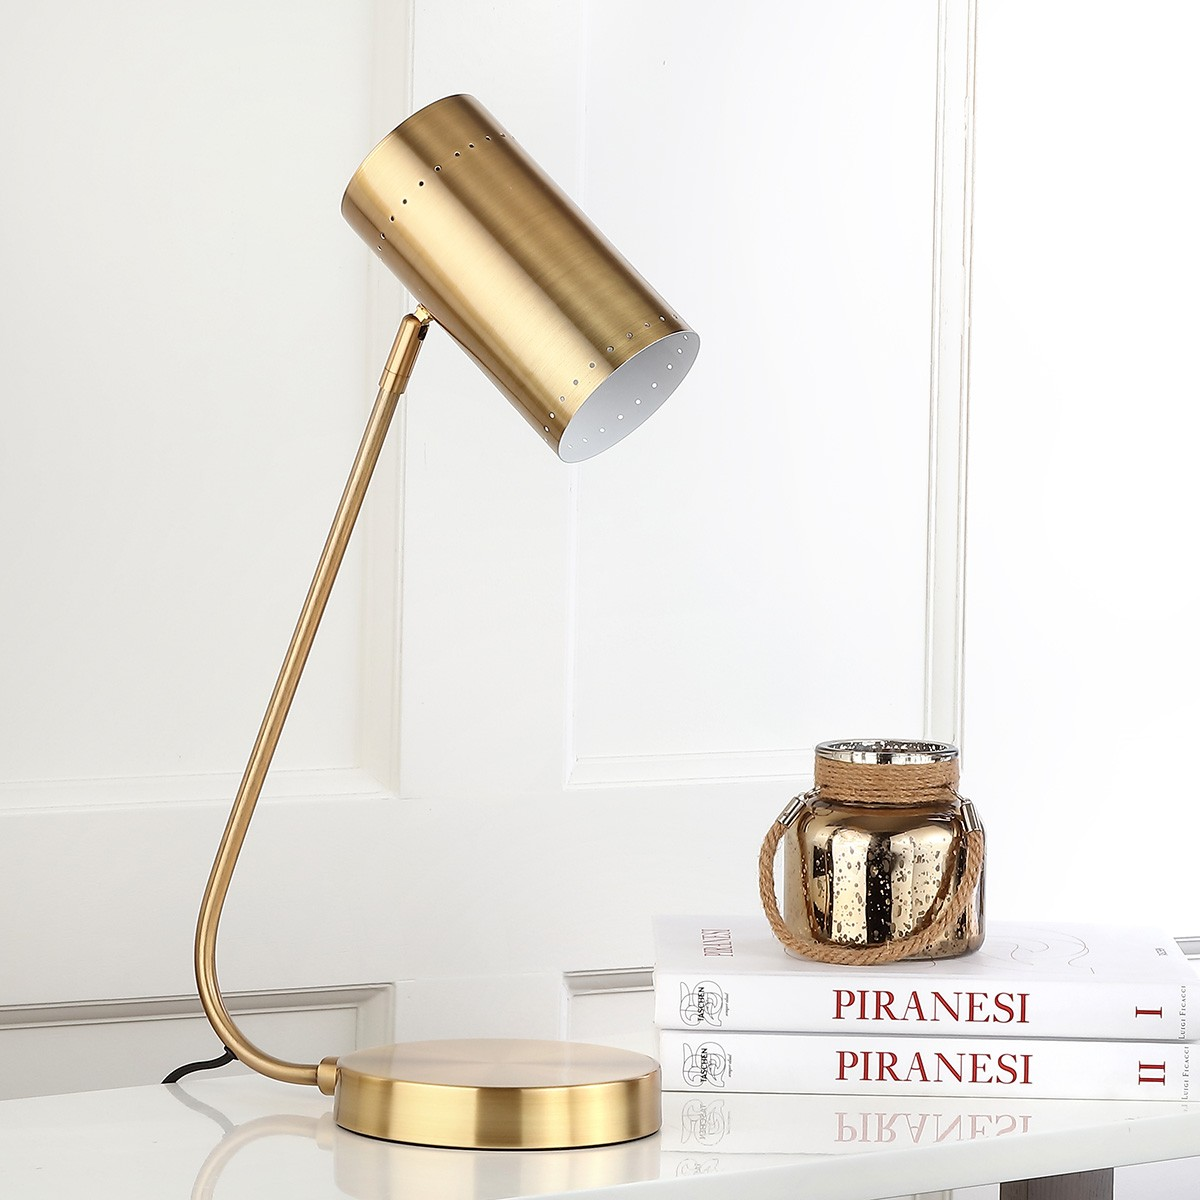 Bring form and function to any living room or home office with the clean  lines and curves of this contemporary table lamp  Finished in a shimmering  gold hue  TBL4035A Table Lamps   Lighting by Safavieh. Contemporary Table Lamps For Living Room. Home Design Ideas